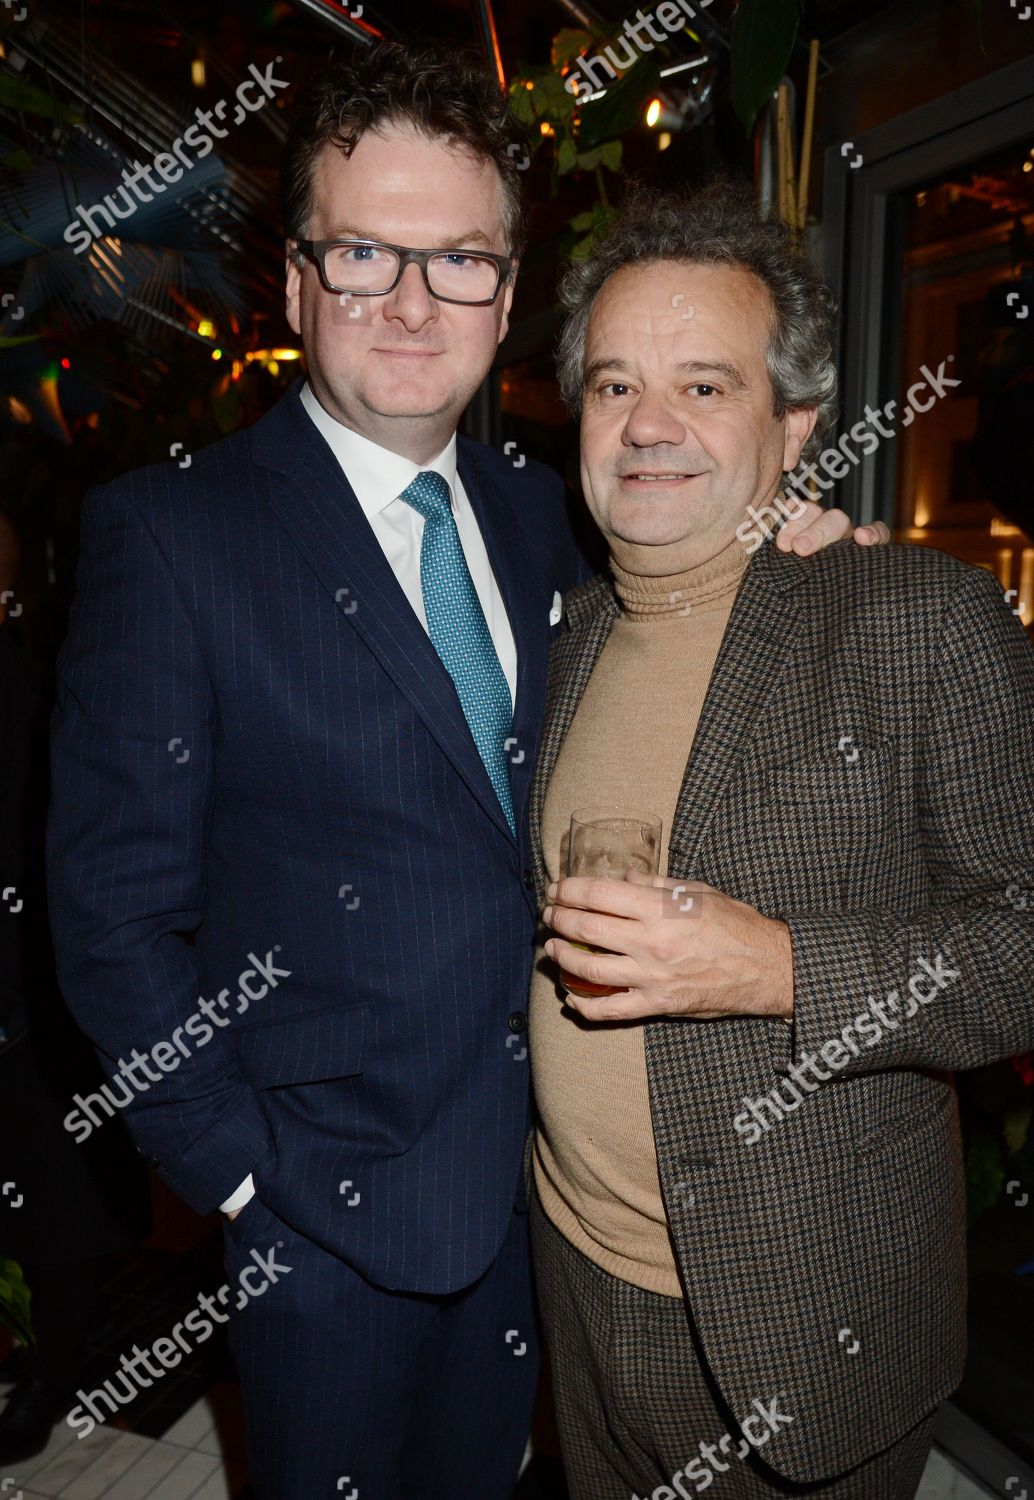 GQ Magazine 30th Anniversary Party Inside London UK Stock Image By Richard Young For Editorial Use Oct 29 2018